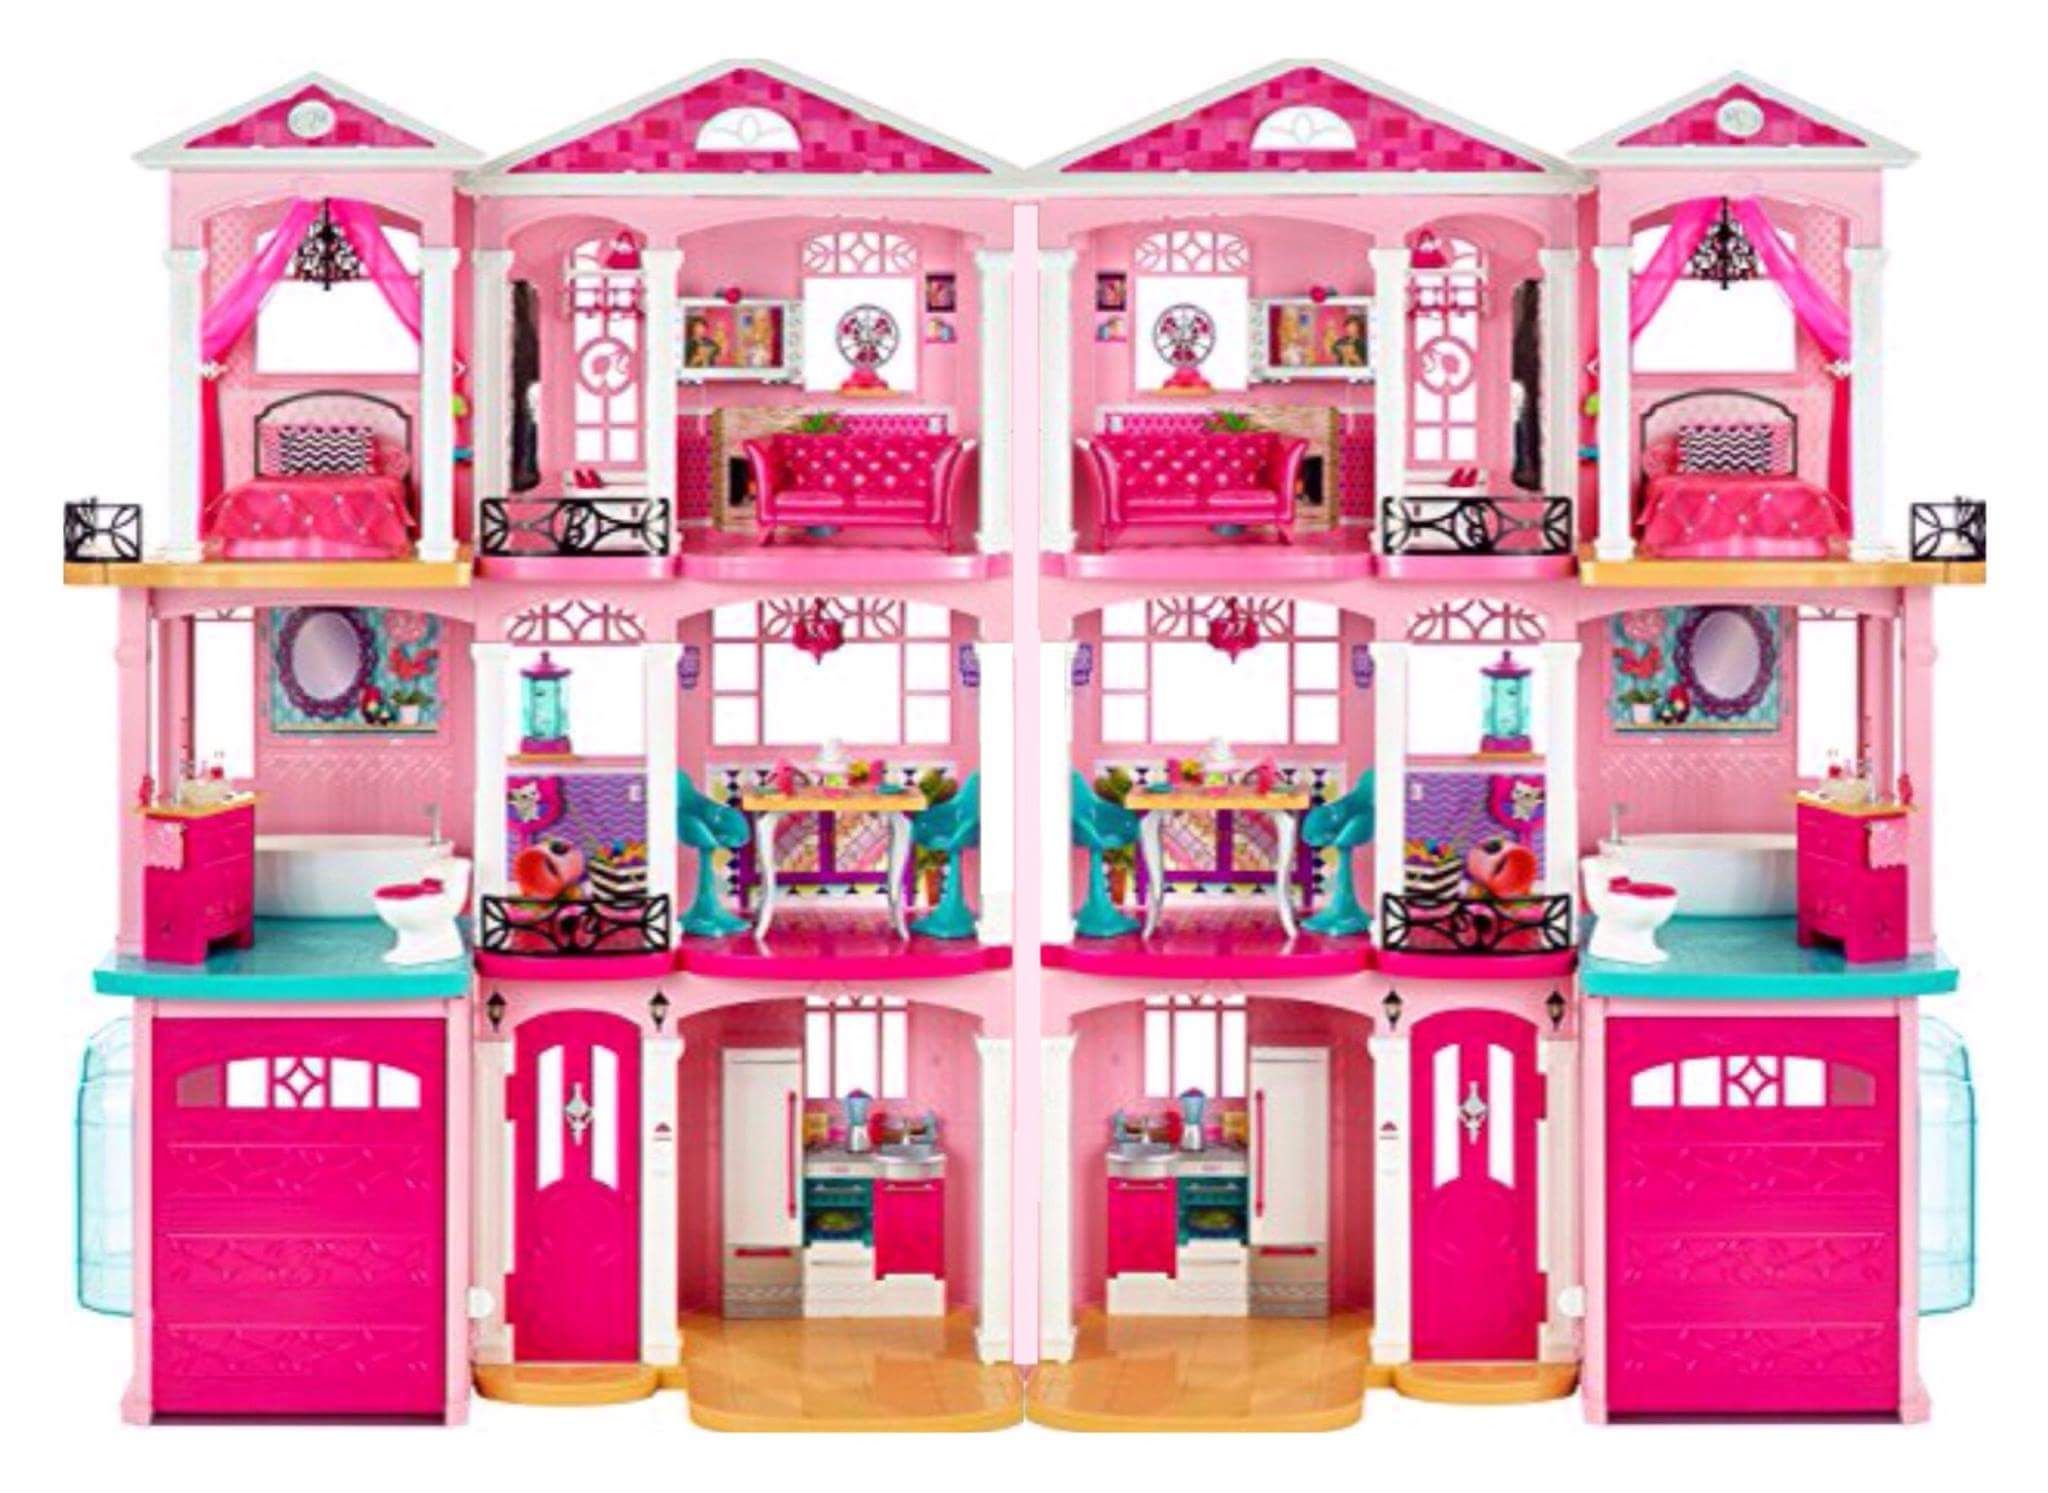 Modified Barbie Dream House 2 Barbie Dream Homes Connected